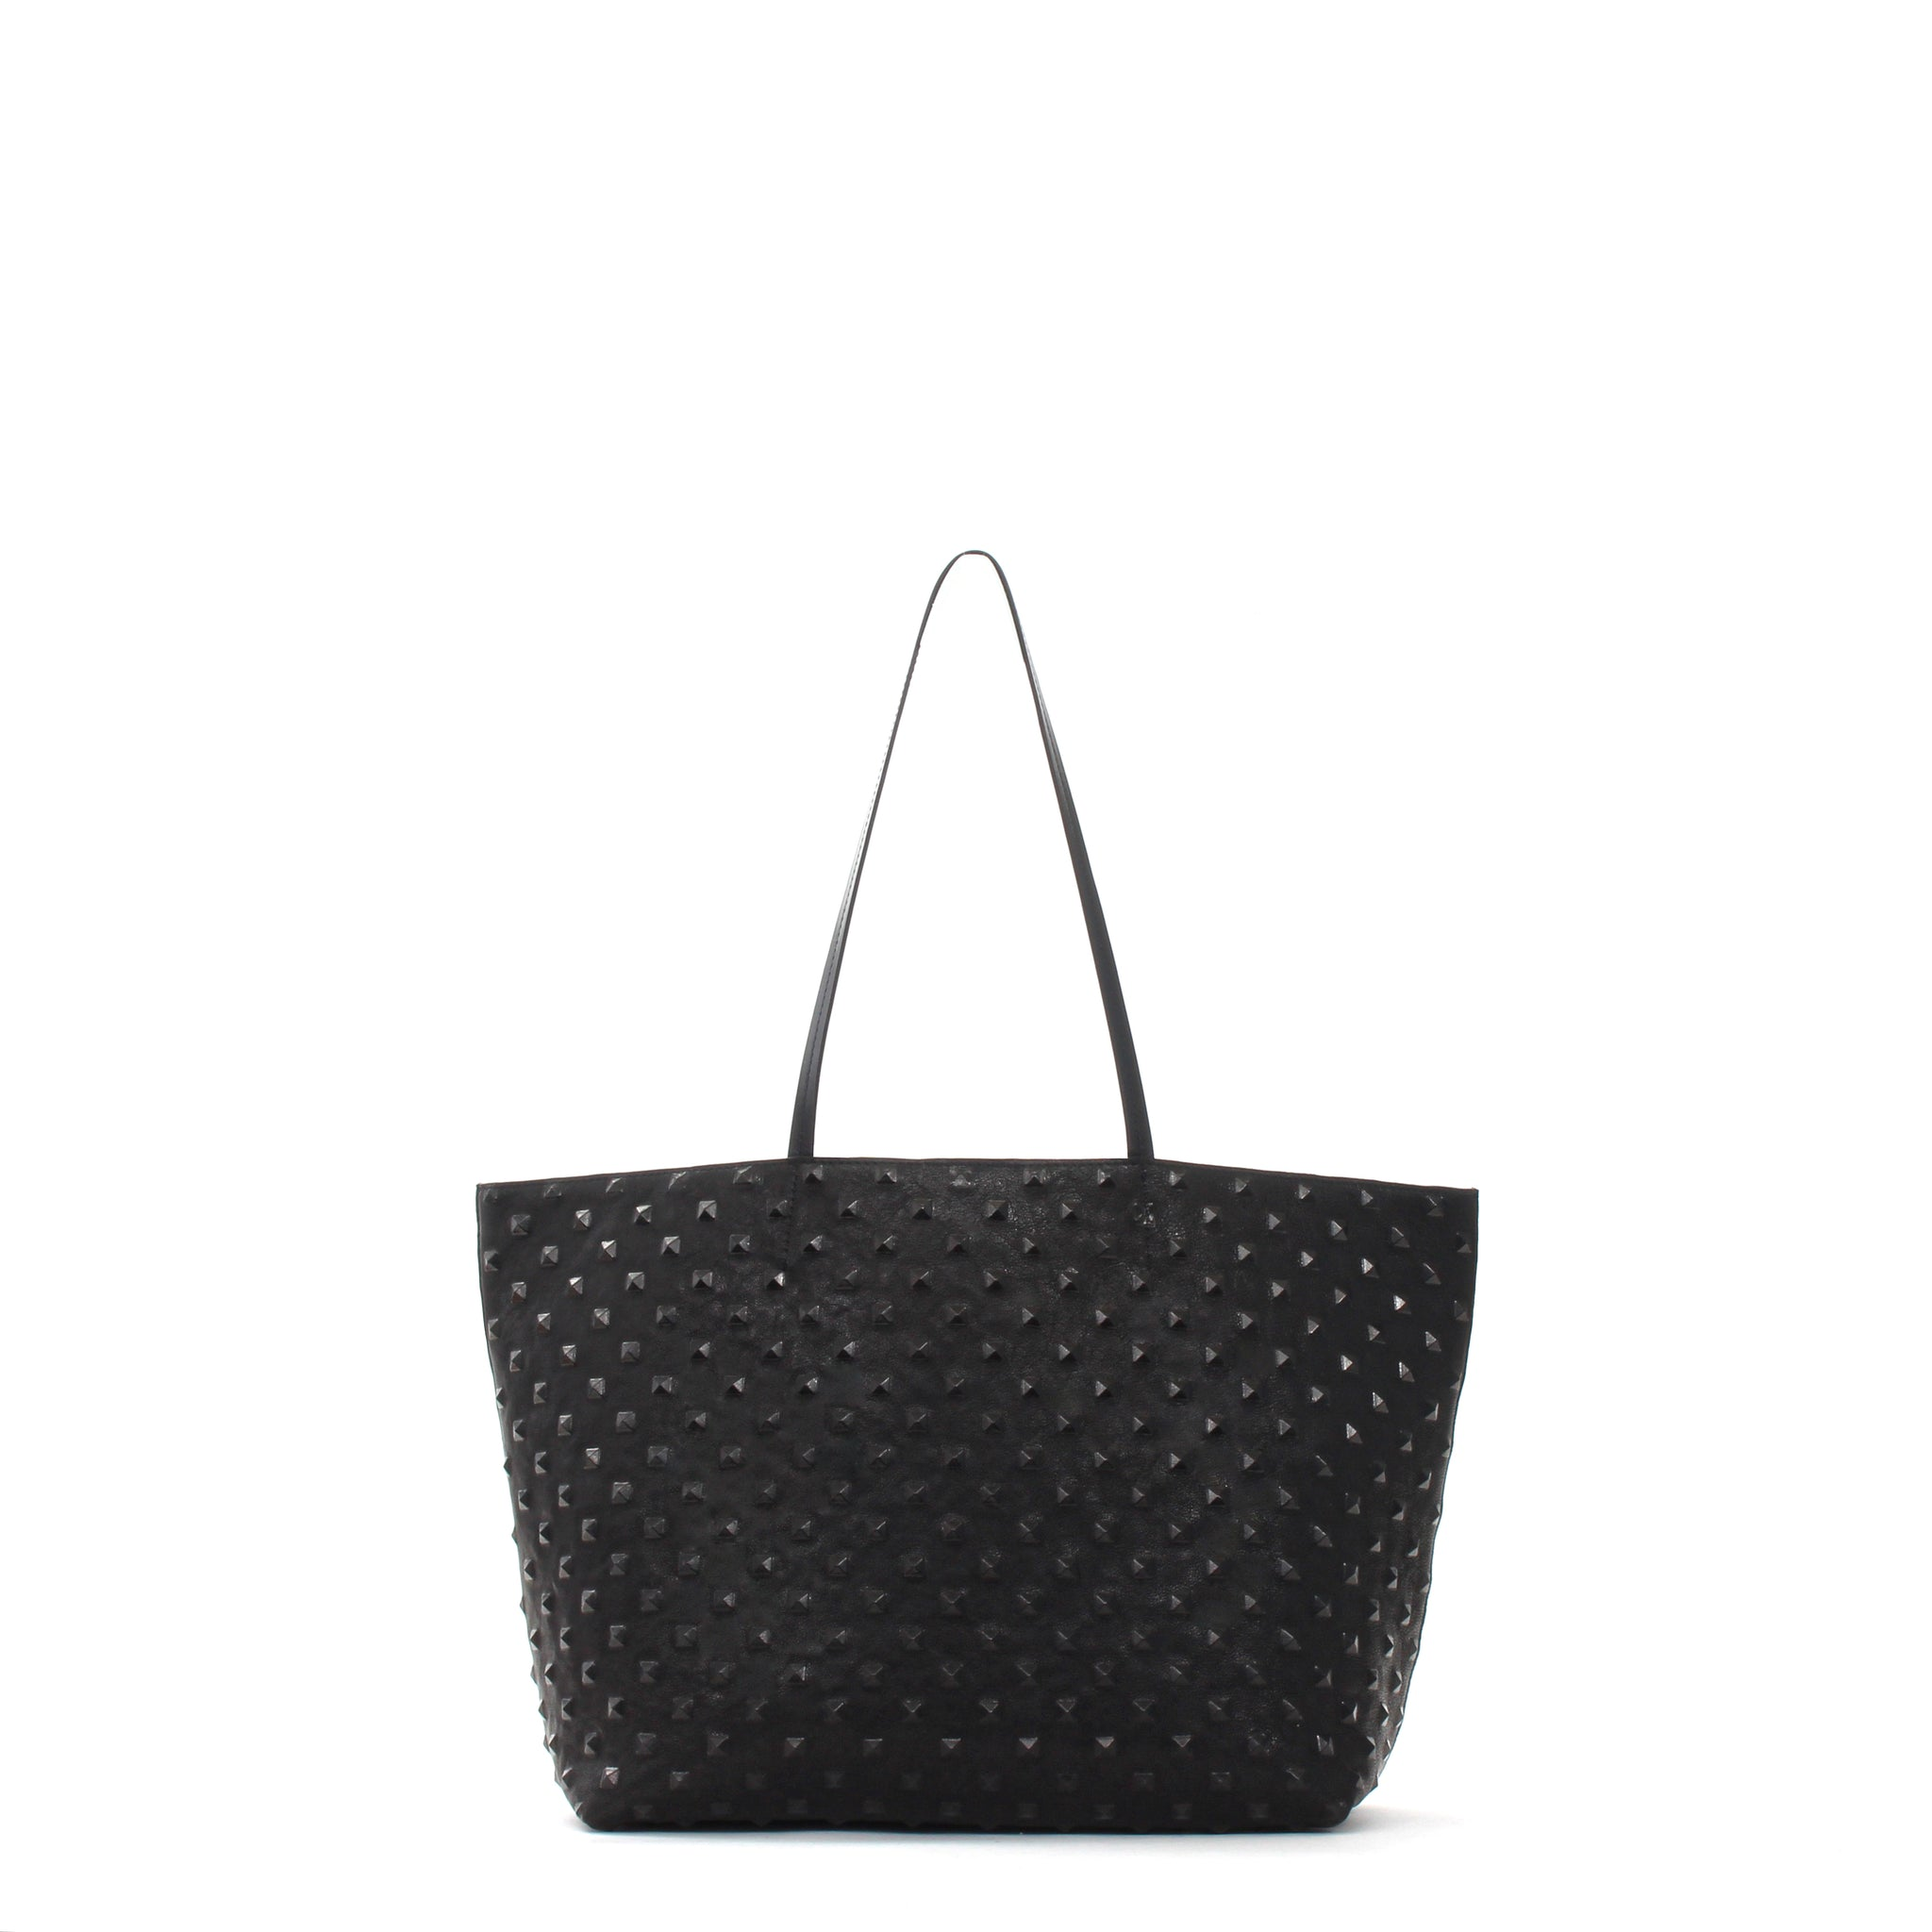 MEDIUM ESSENTIAL TOTE BLACK STUD